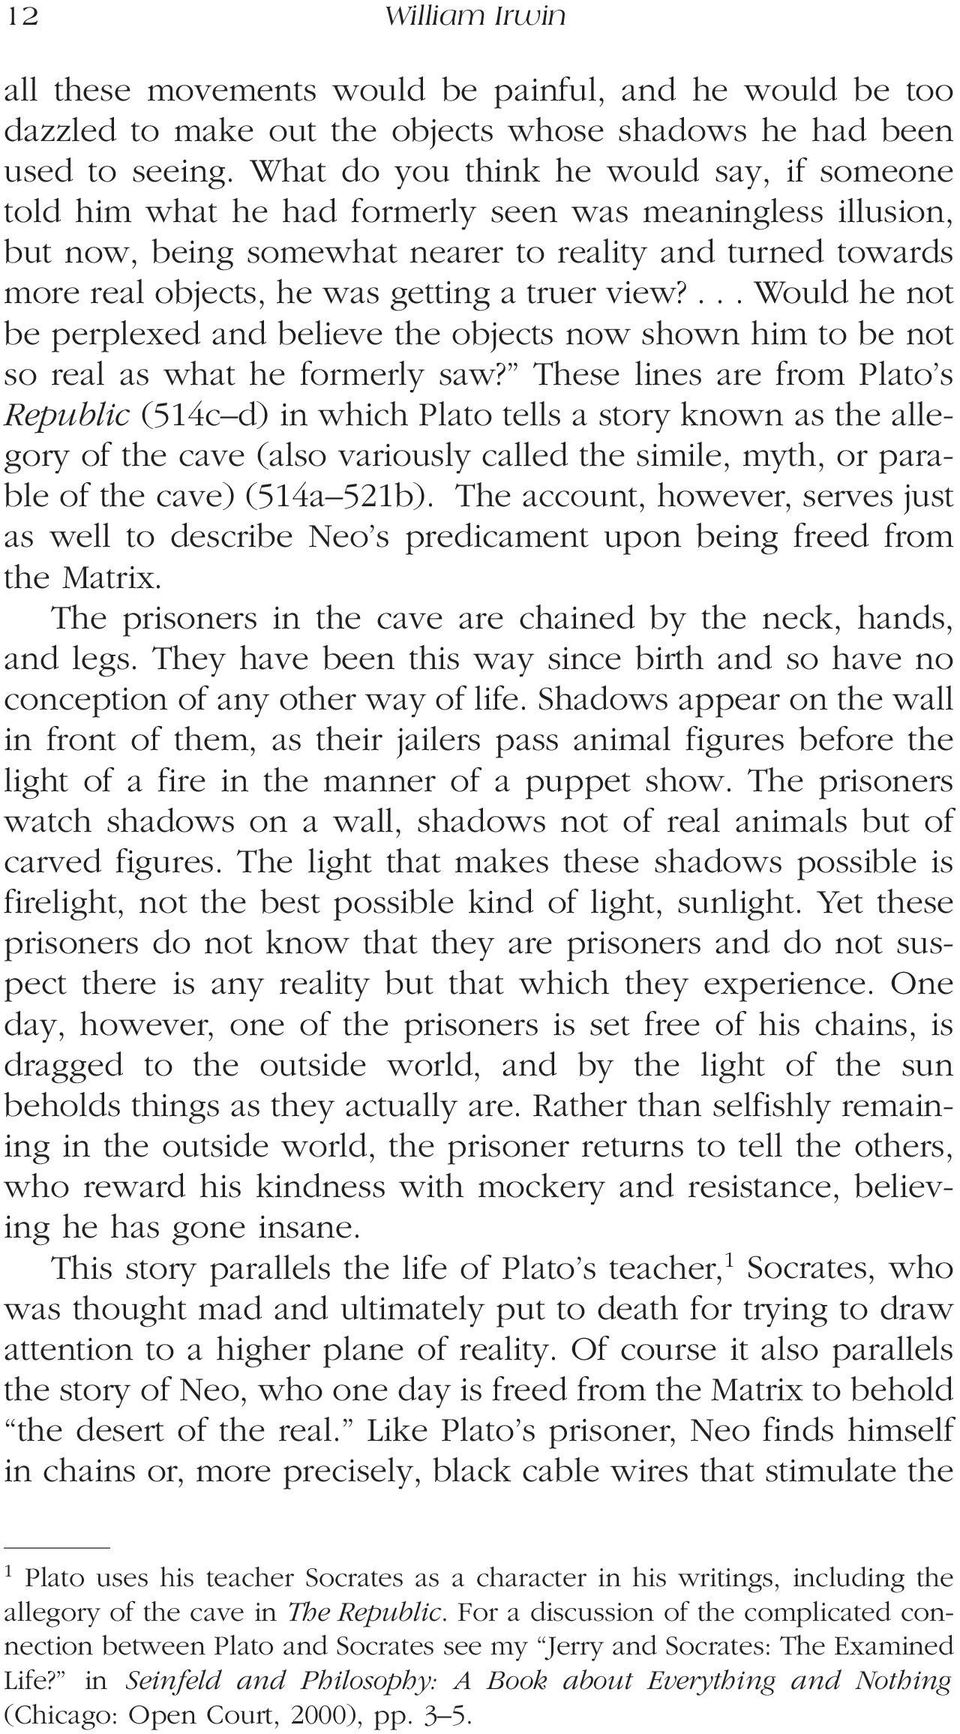 a discussion of the parallels between the shadows the prisoner sees on the wall on the cave and the  I haven't seen any mention of this yet as a very large symbolic piece of the overall story quick synopsis of plato's allegory of the cave in.